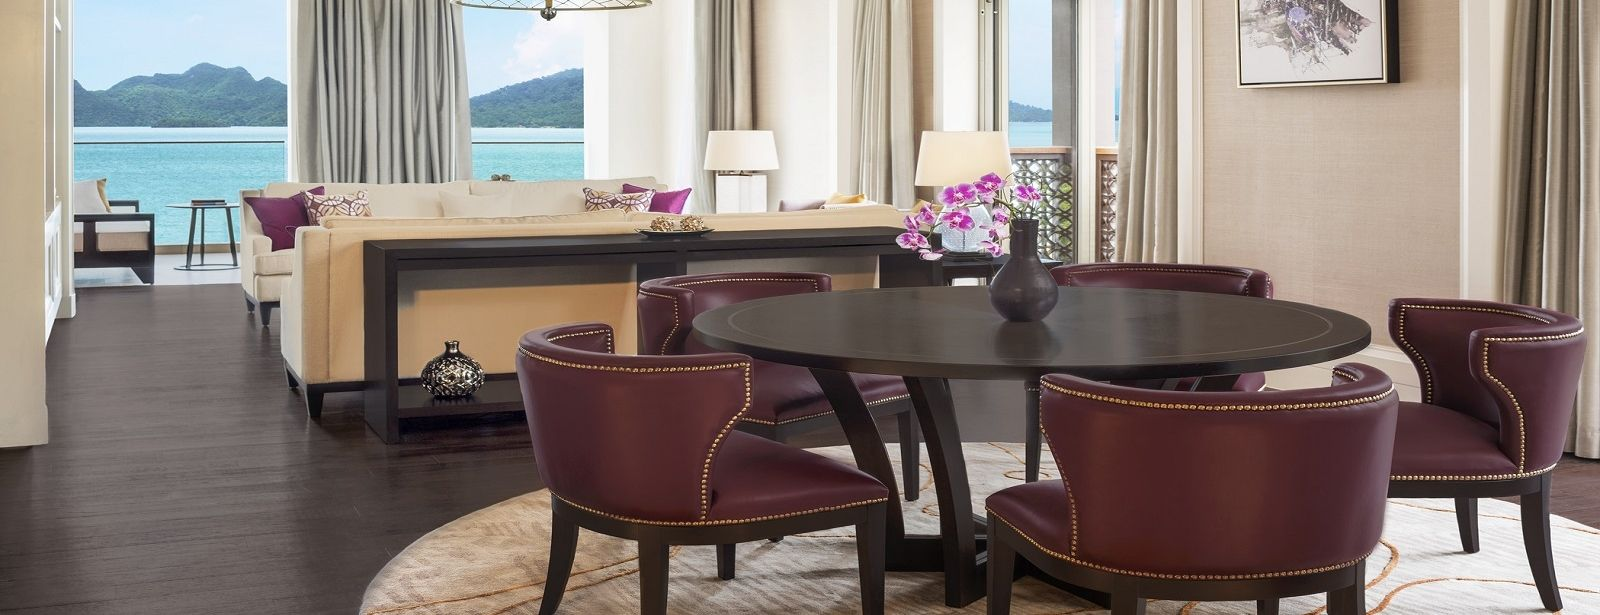 Panoramic Suite | The St. Regis Langkawi